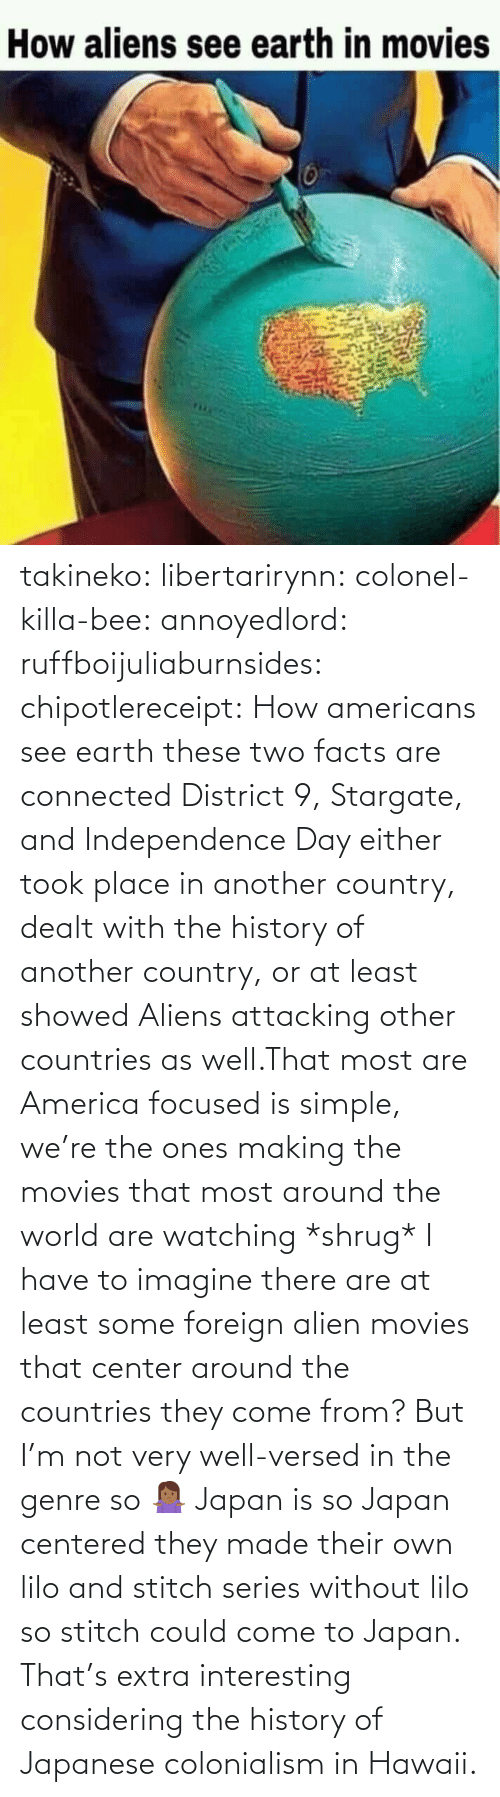 From: takineko:  libertarirynn:  colonel-killa-bee:  annoyedlord: ruffboijuliaburnsides:  chipotlereceipt: How americans see earth these two facts are connected     District 9, Stargate, and Independence Day either took place in another country, dealt with the history of another country, or at least showed Aliens attacking other countries as well.That most are America focused is simple, we're the ones making the movies that most around the world are watching *shrug*   I have to imagine there are at least some foreign alien movies that center around the countries they come from? But I'm not very well-versed in the genre so 🤷🏾‍♀️   Japan is so Japan centered they made their own lilo and stitch series without lilo so stitch could come to Japan.    That's extra interesting considering the history of Japanese colonialism in Hawaii.